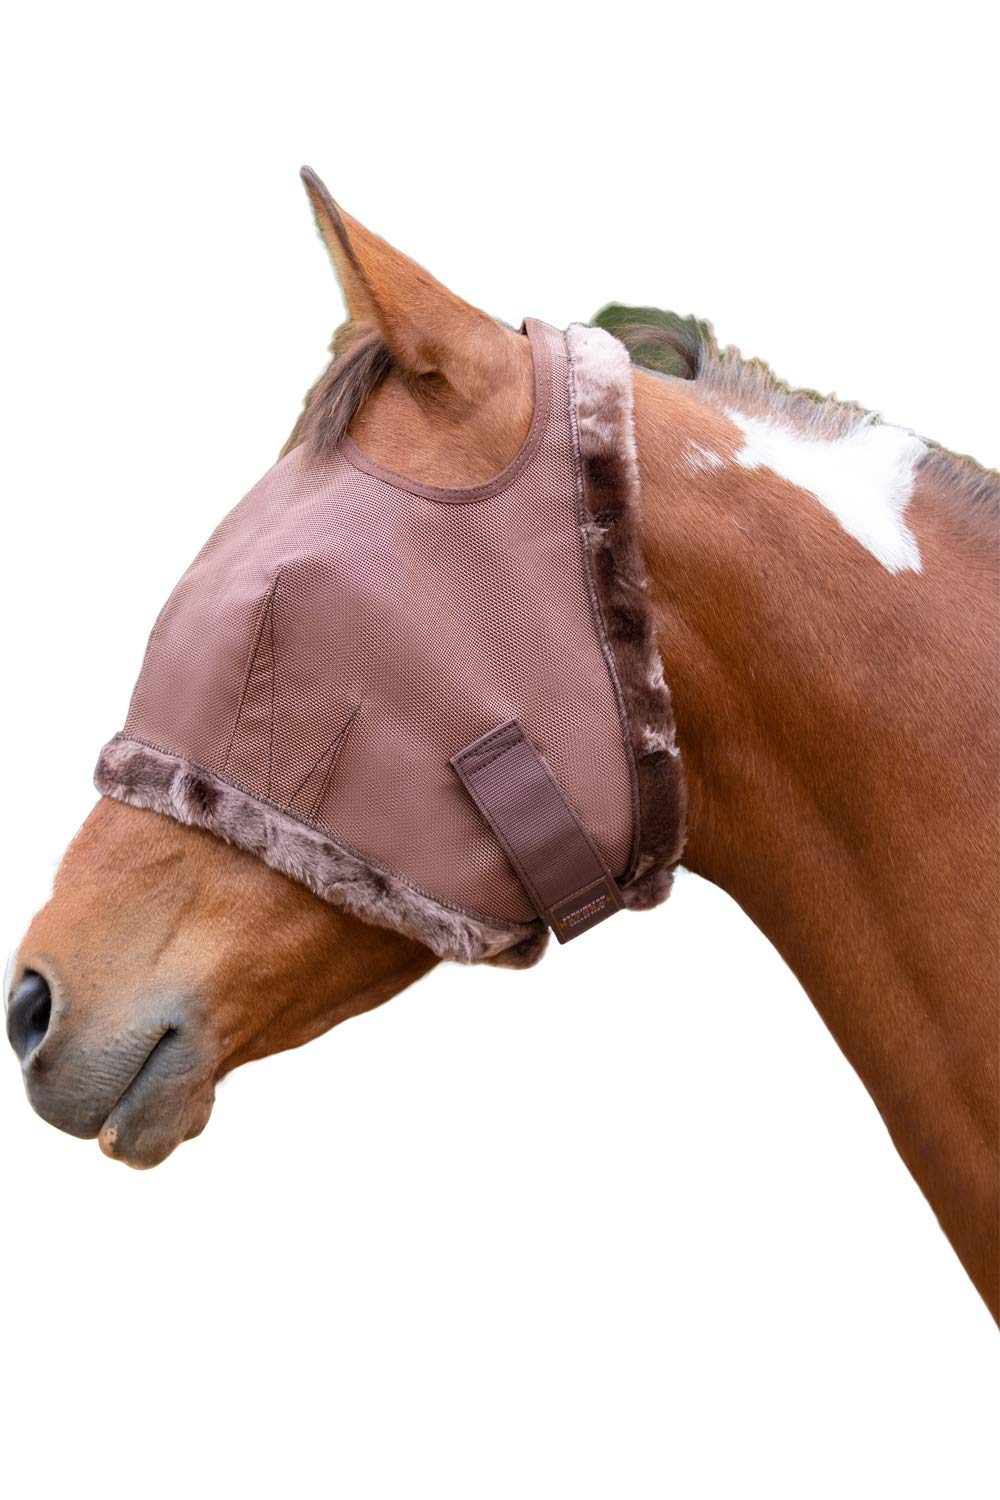 Kensington Fly Mask Fleece Trim for Horses - Protects Face, Eyes from Flies, UV Rays While Allowing Full Visibility - Breathable Non Heat Transferring, Perfect Year Round, (M, Bay) by Kensington Protective Products